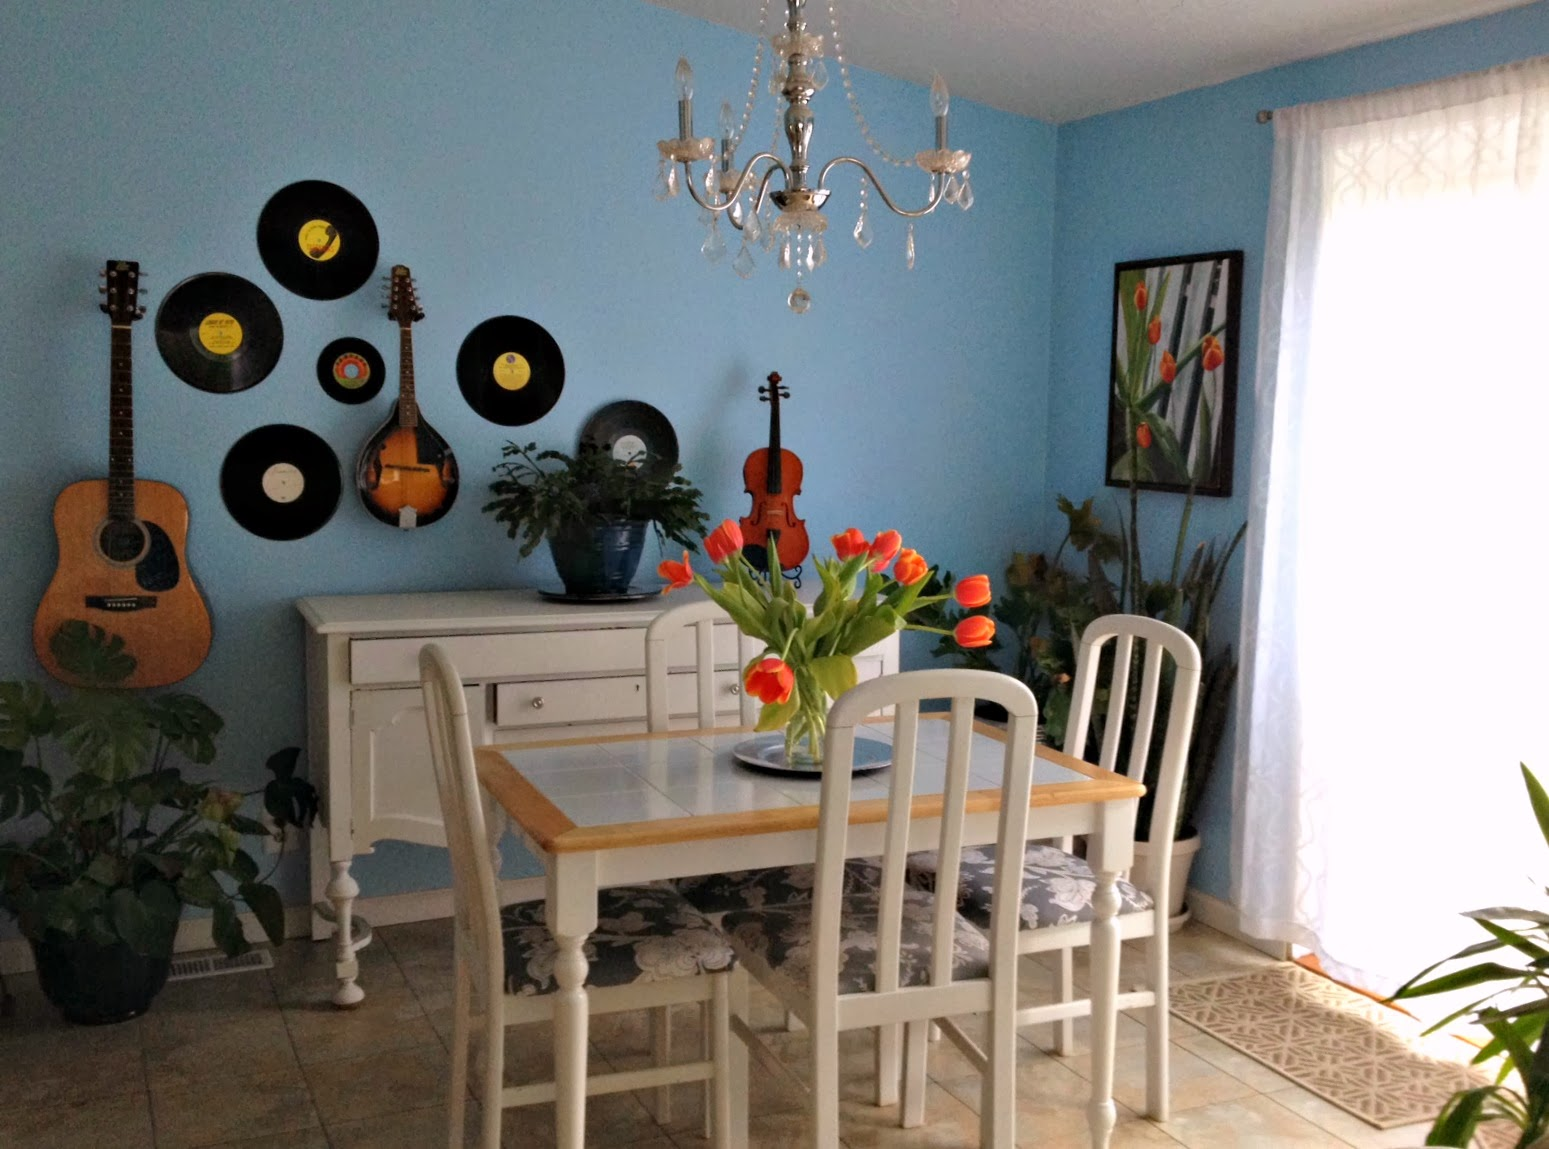 Home Tour: My Musical Dining Room - Crafty Little Gnome